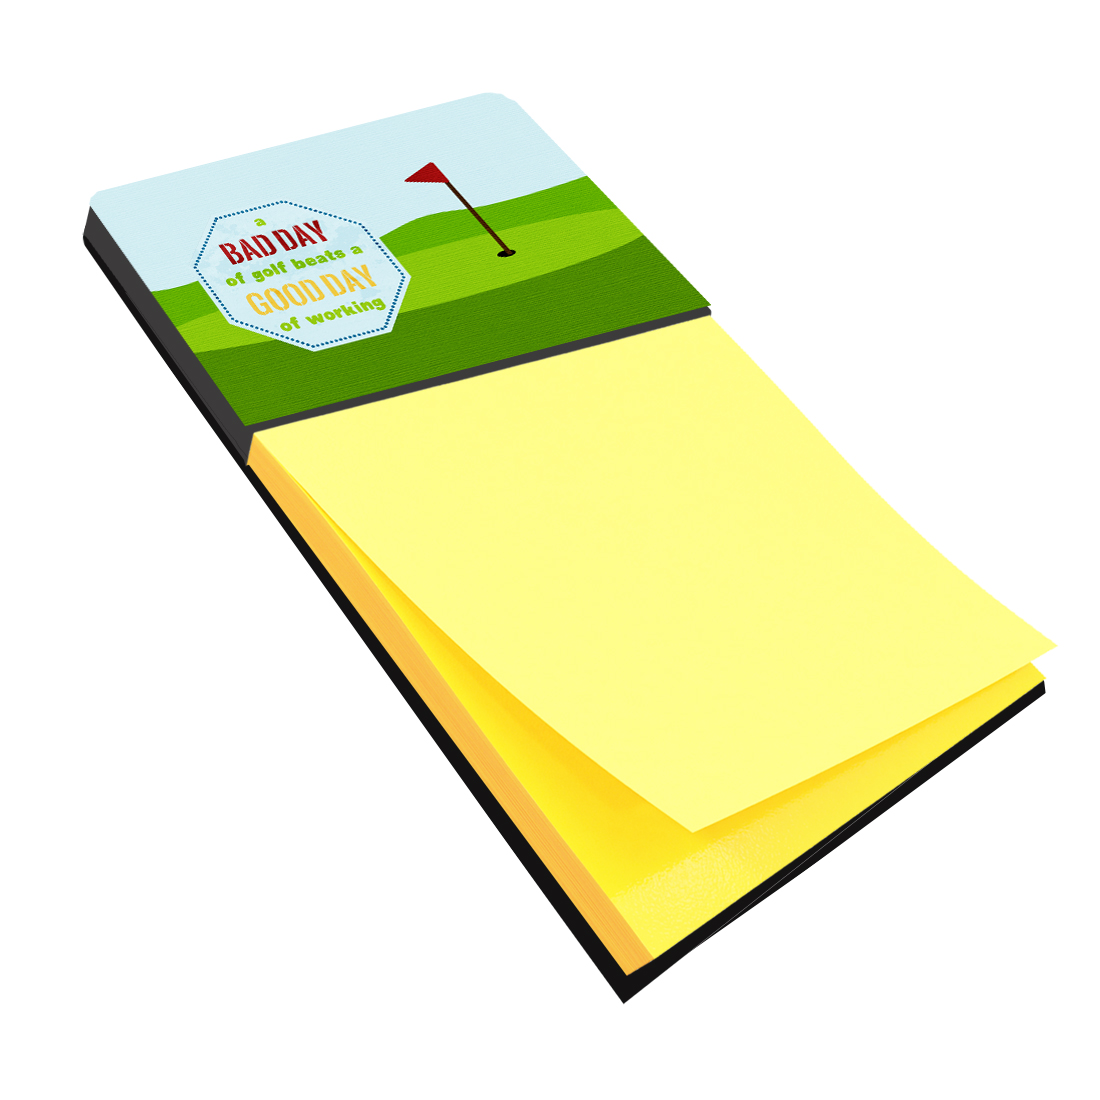 A Bad Day at Golf Refiillable Sticky Note Holder or Postit Note Dispenser SB3091SN